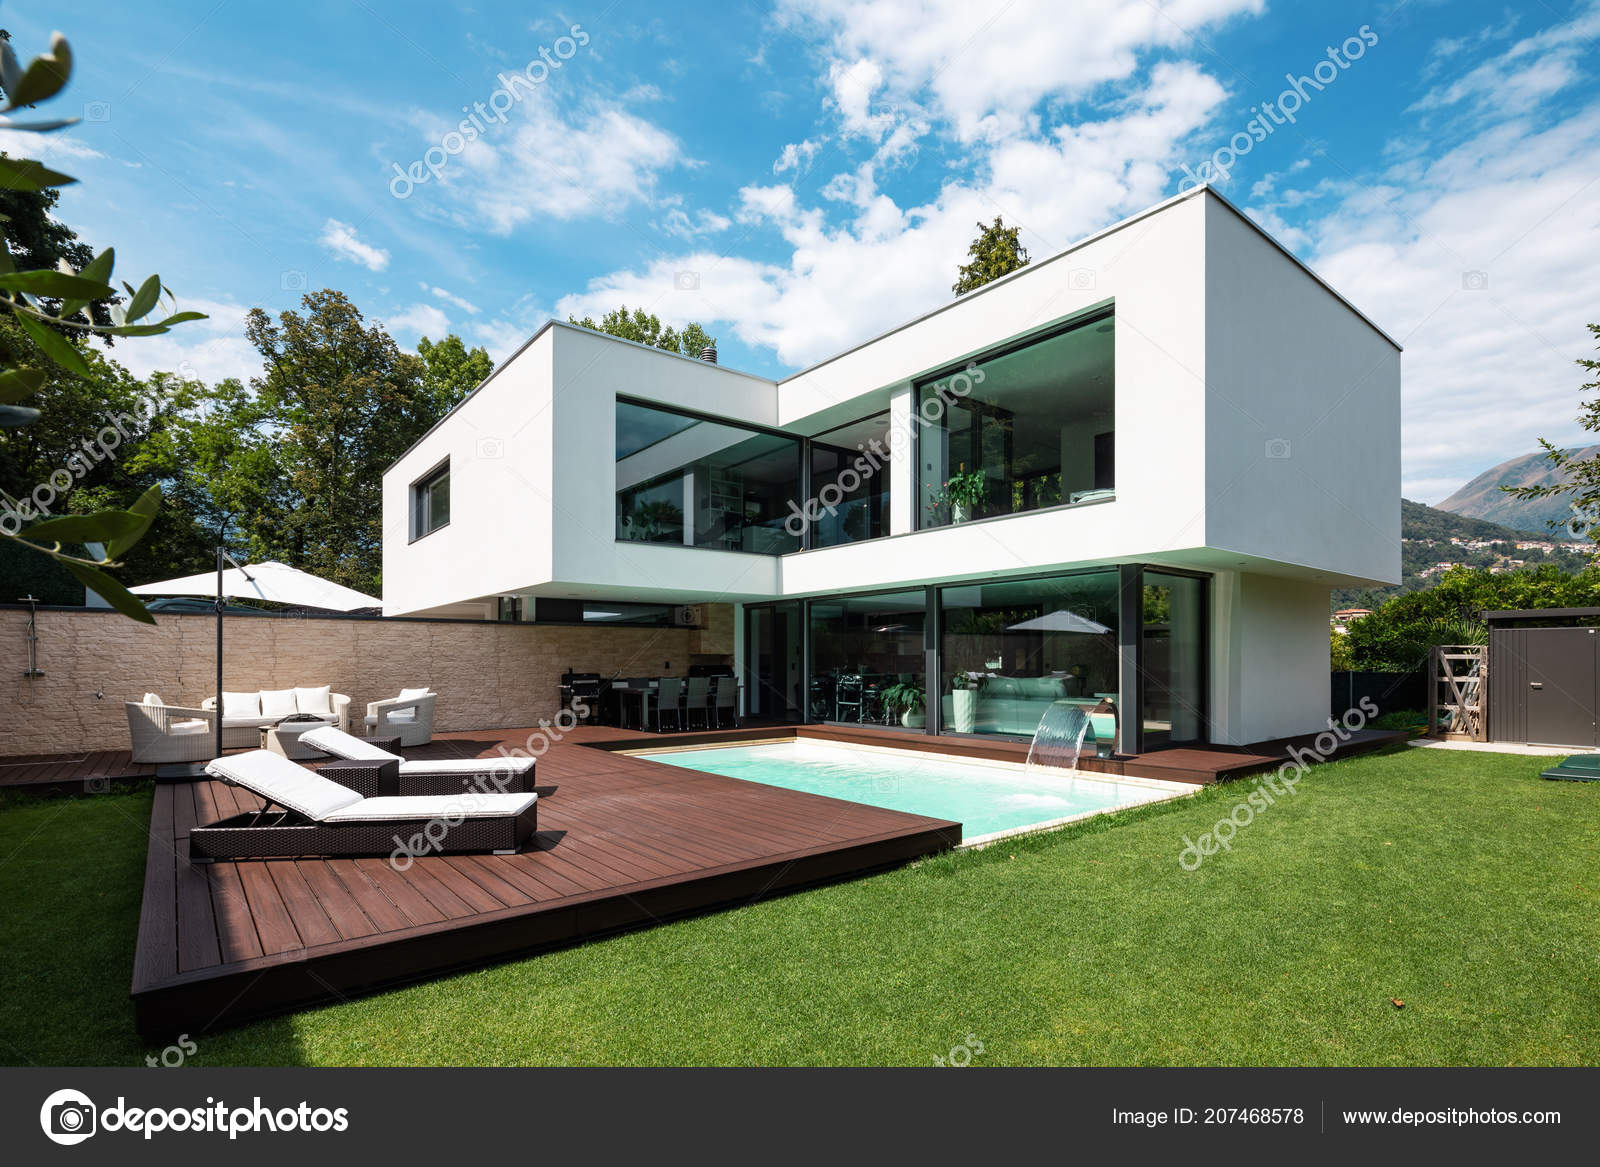 Beautiful Modernes Haus Mit Pool Und Garten Contemporary - Farbideen ...